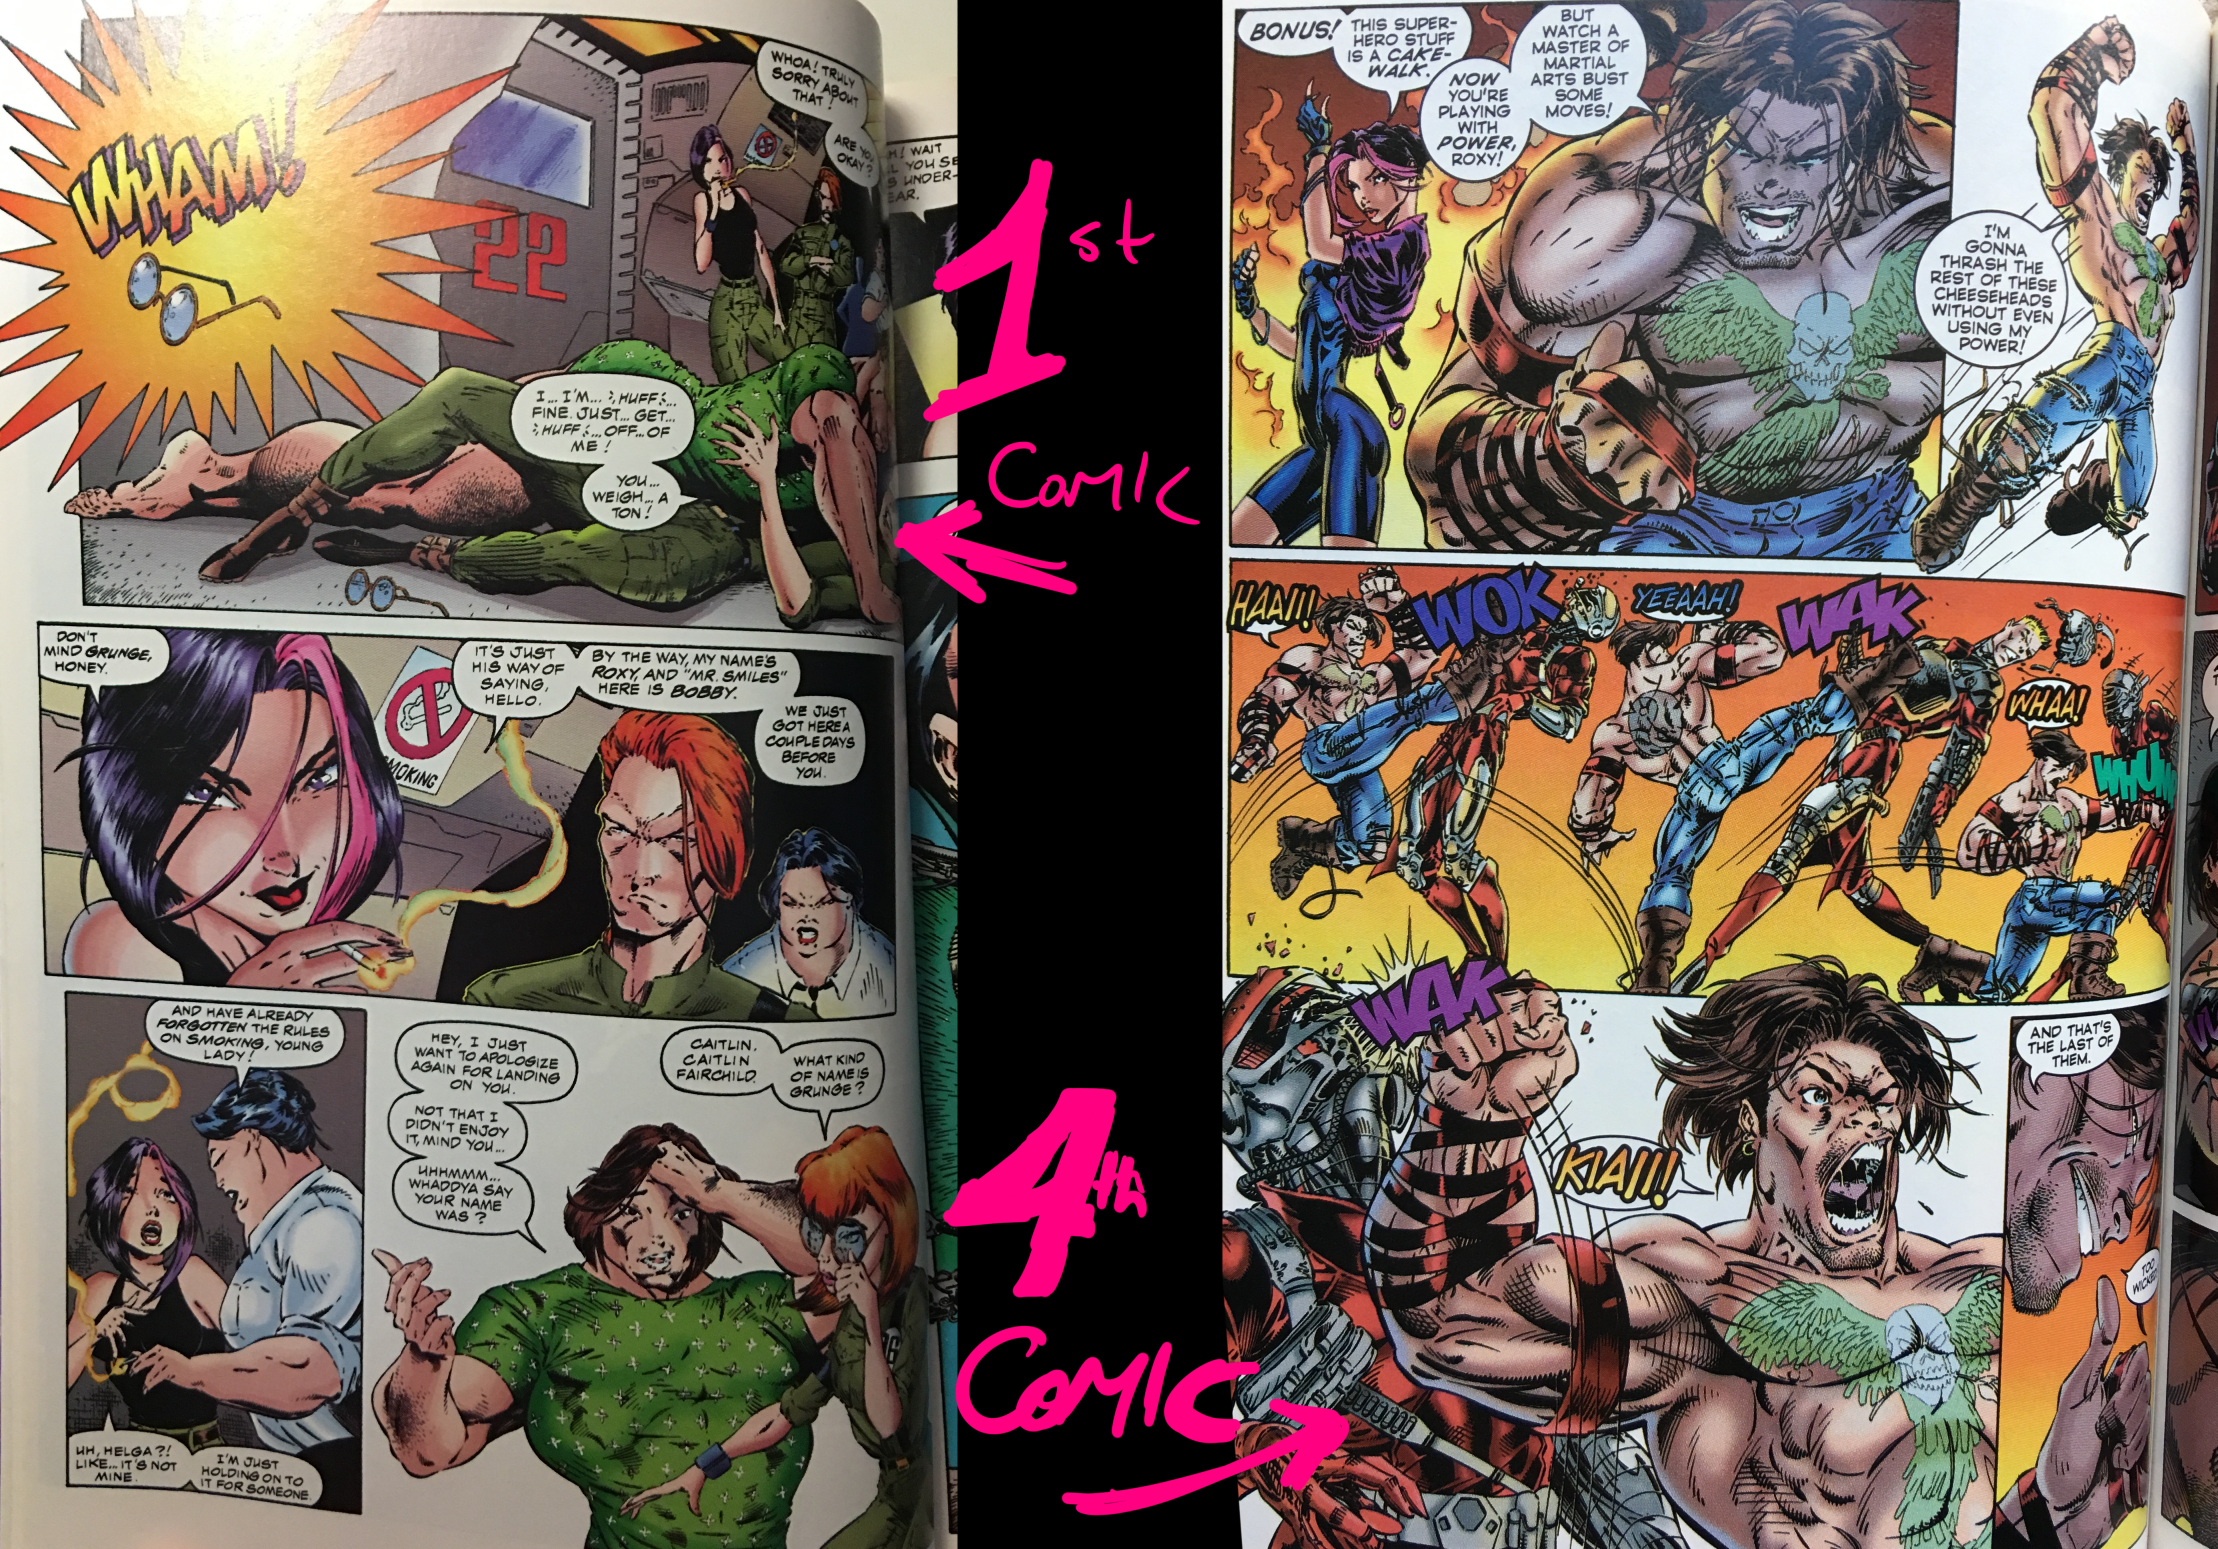 Gen13 - Comparing Issue #1 vs. #4